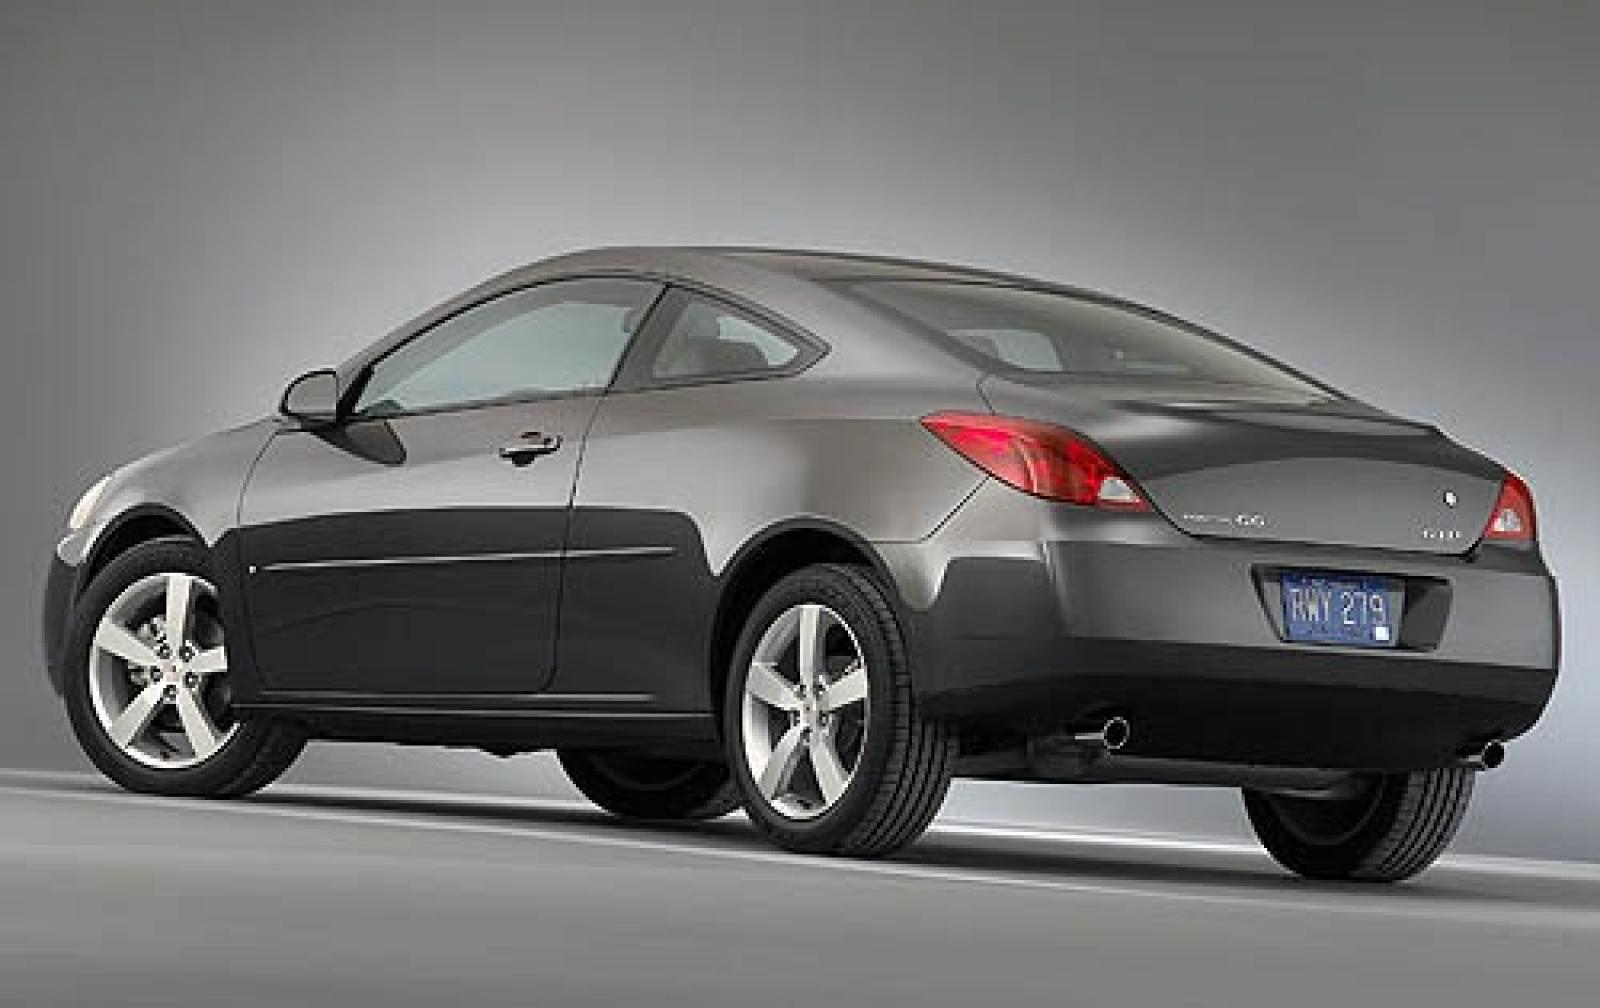 2008 Pontiac G6 Information And Photos Zombiedrive